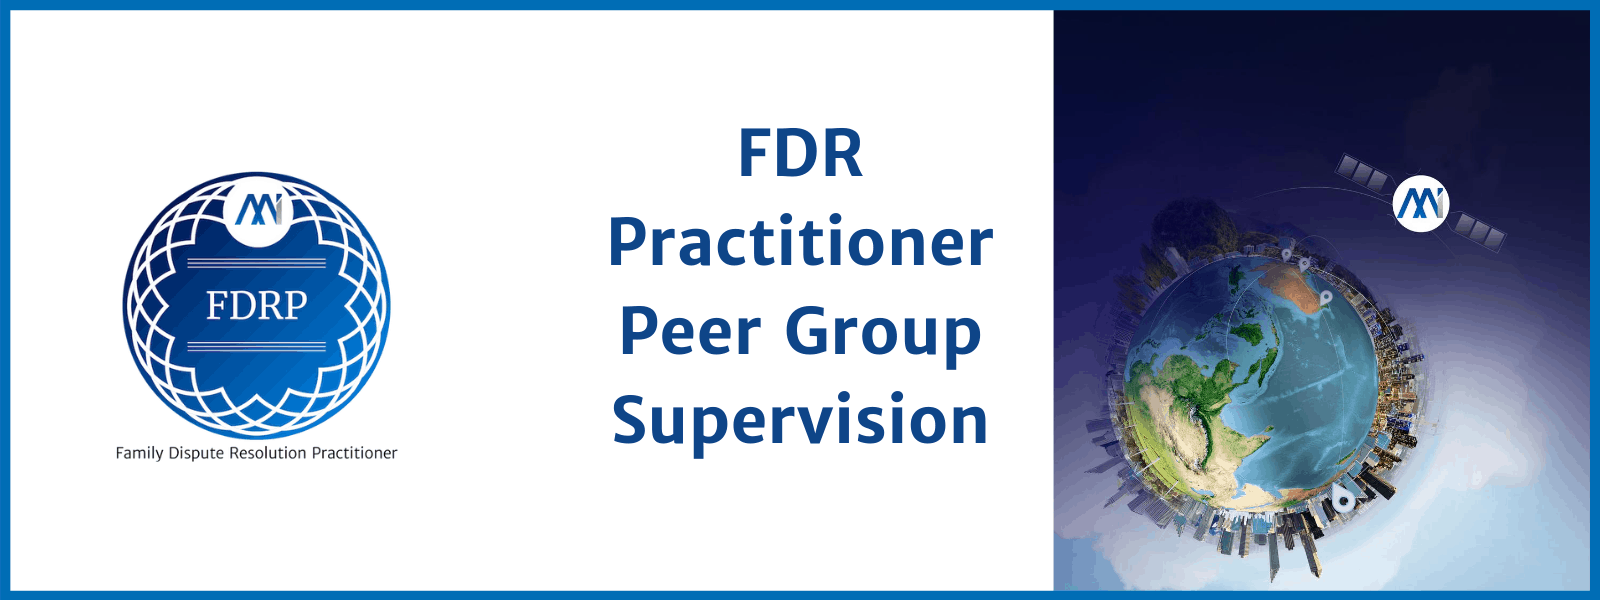 Online Peer Group Supervision